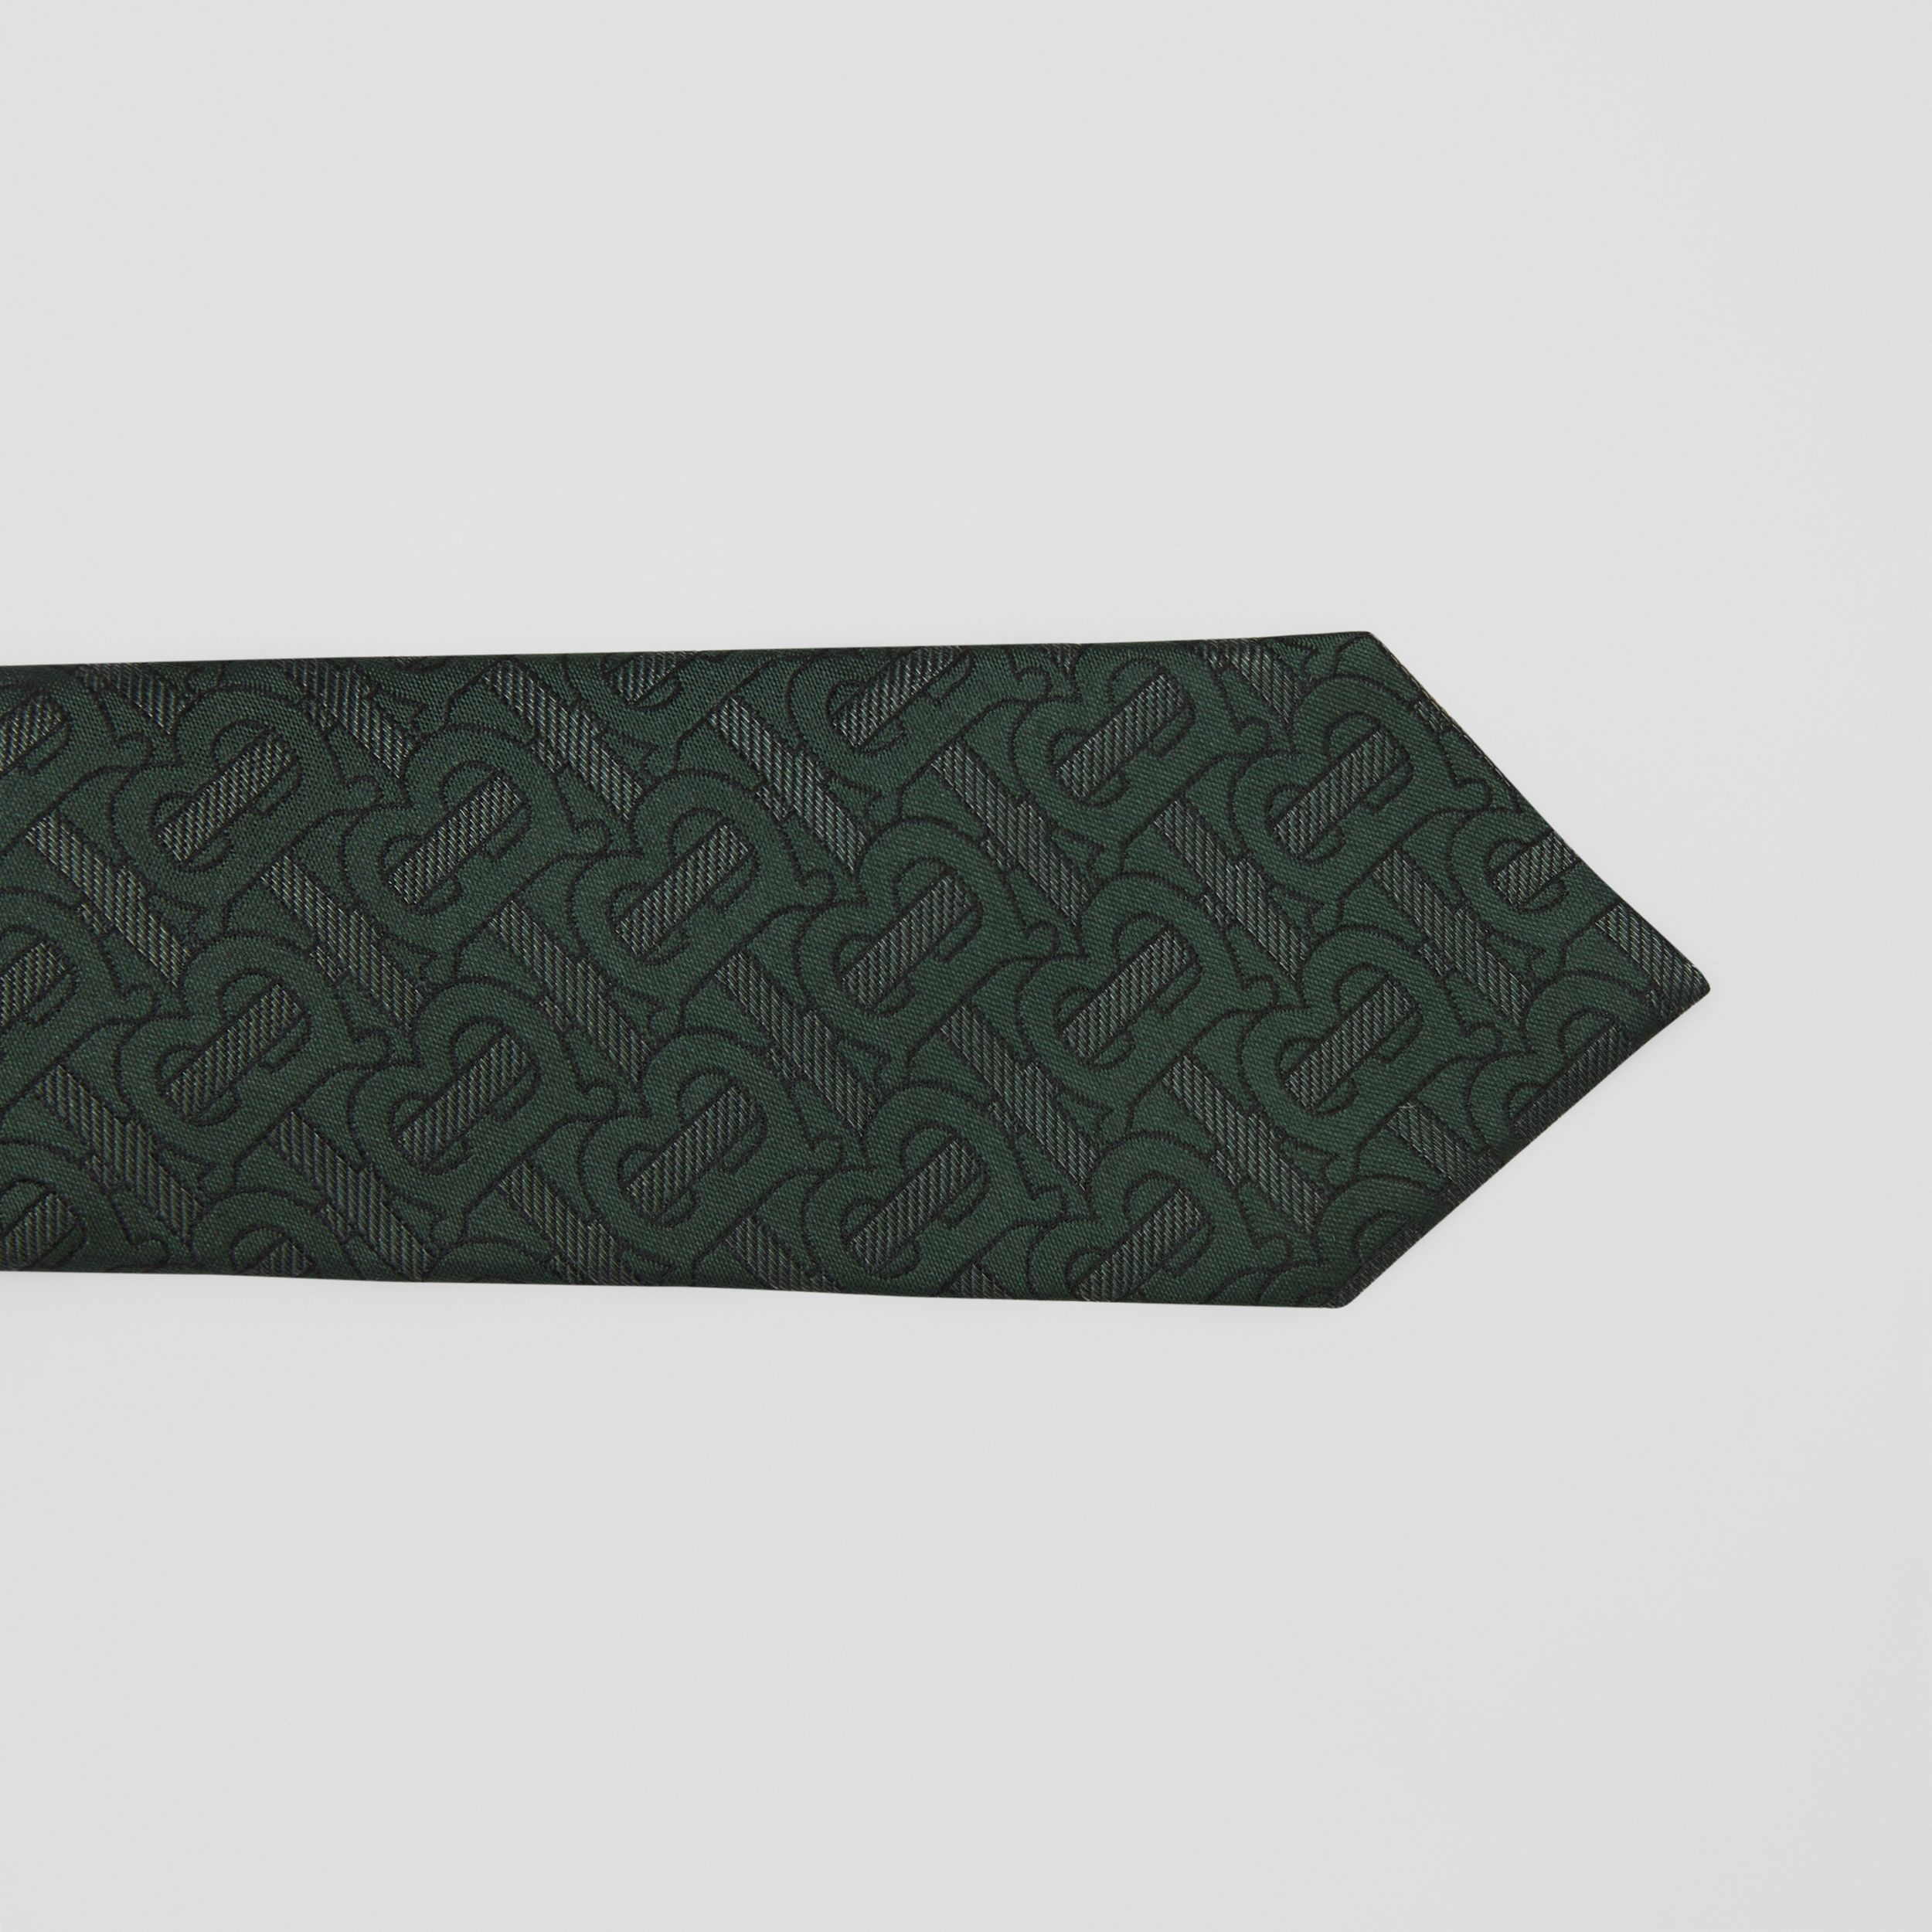 Classic Cut Monogram Silk Blend Jacquard Tie in Dark Forest Green - Men | Burberry - 2